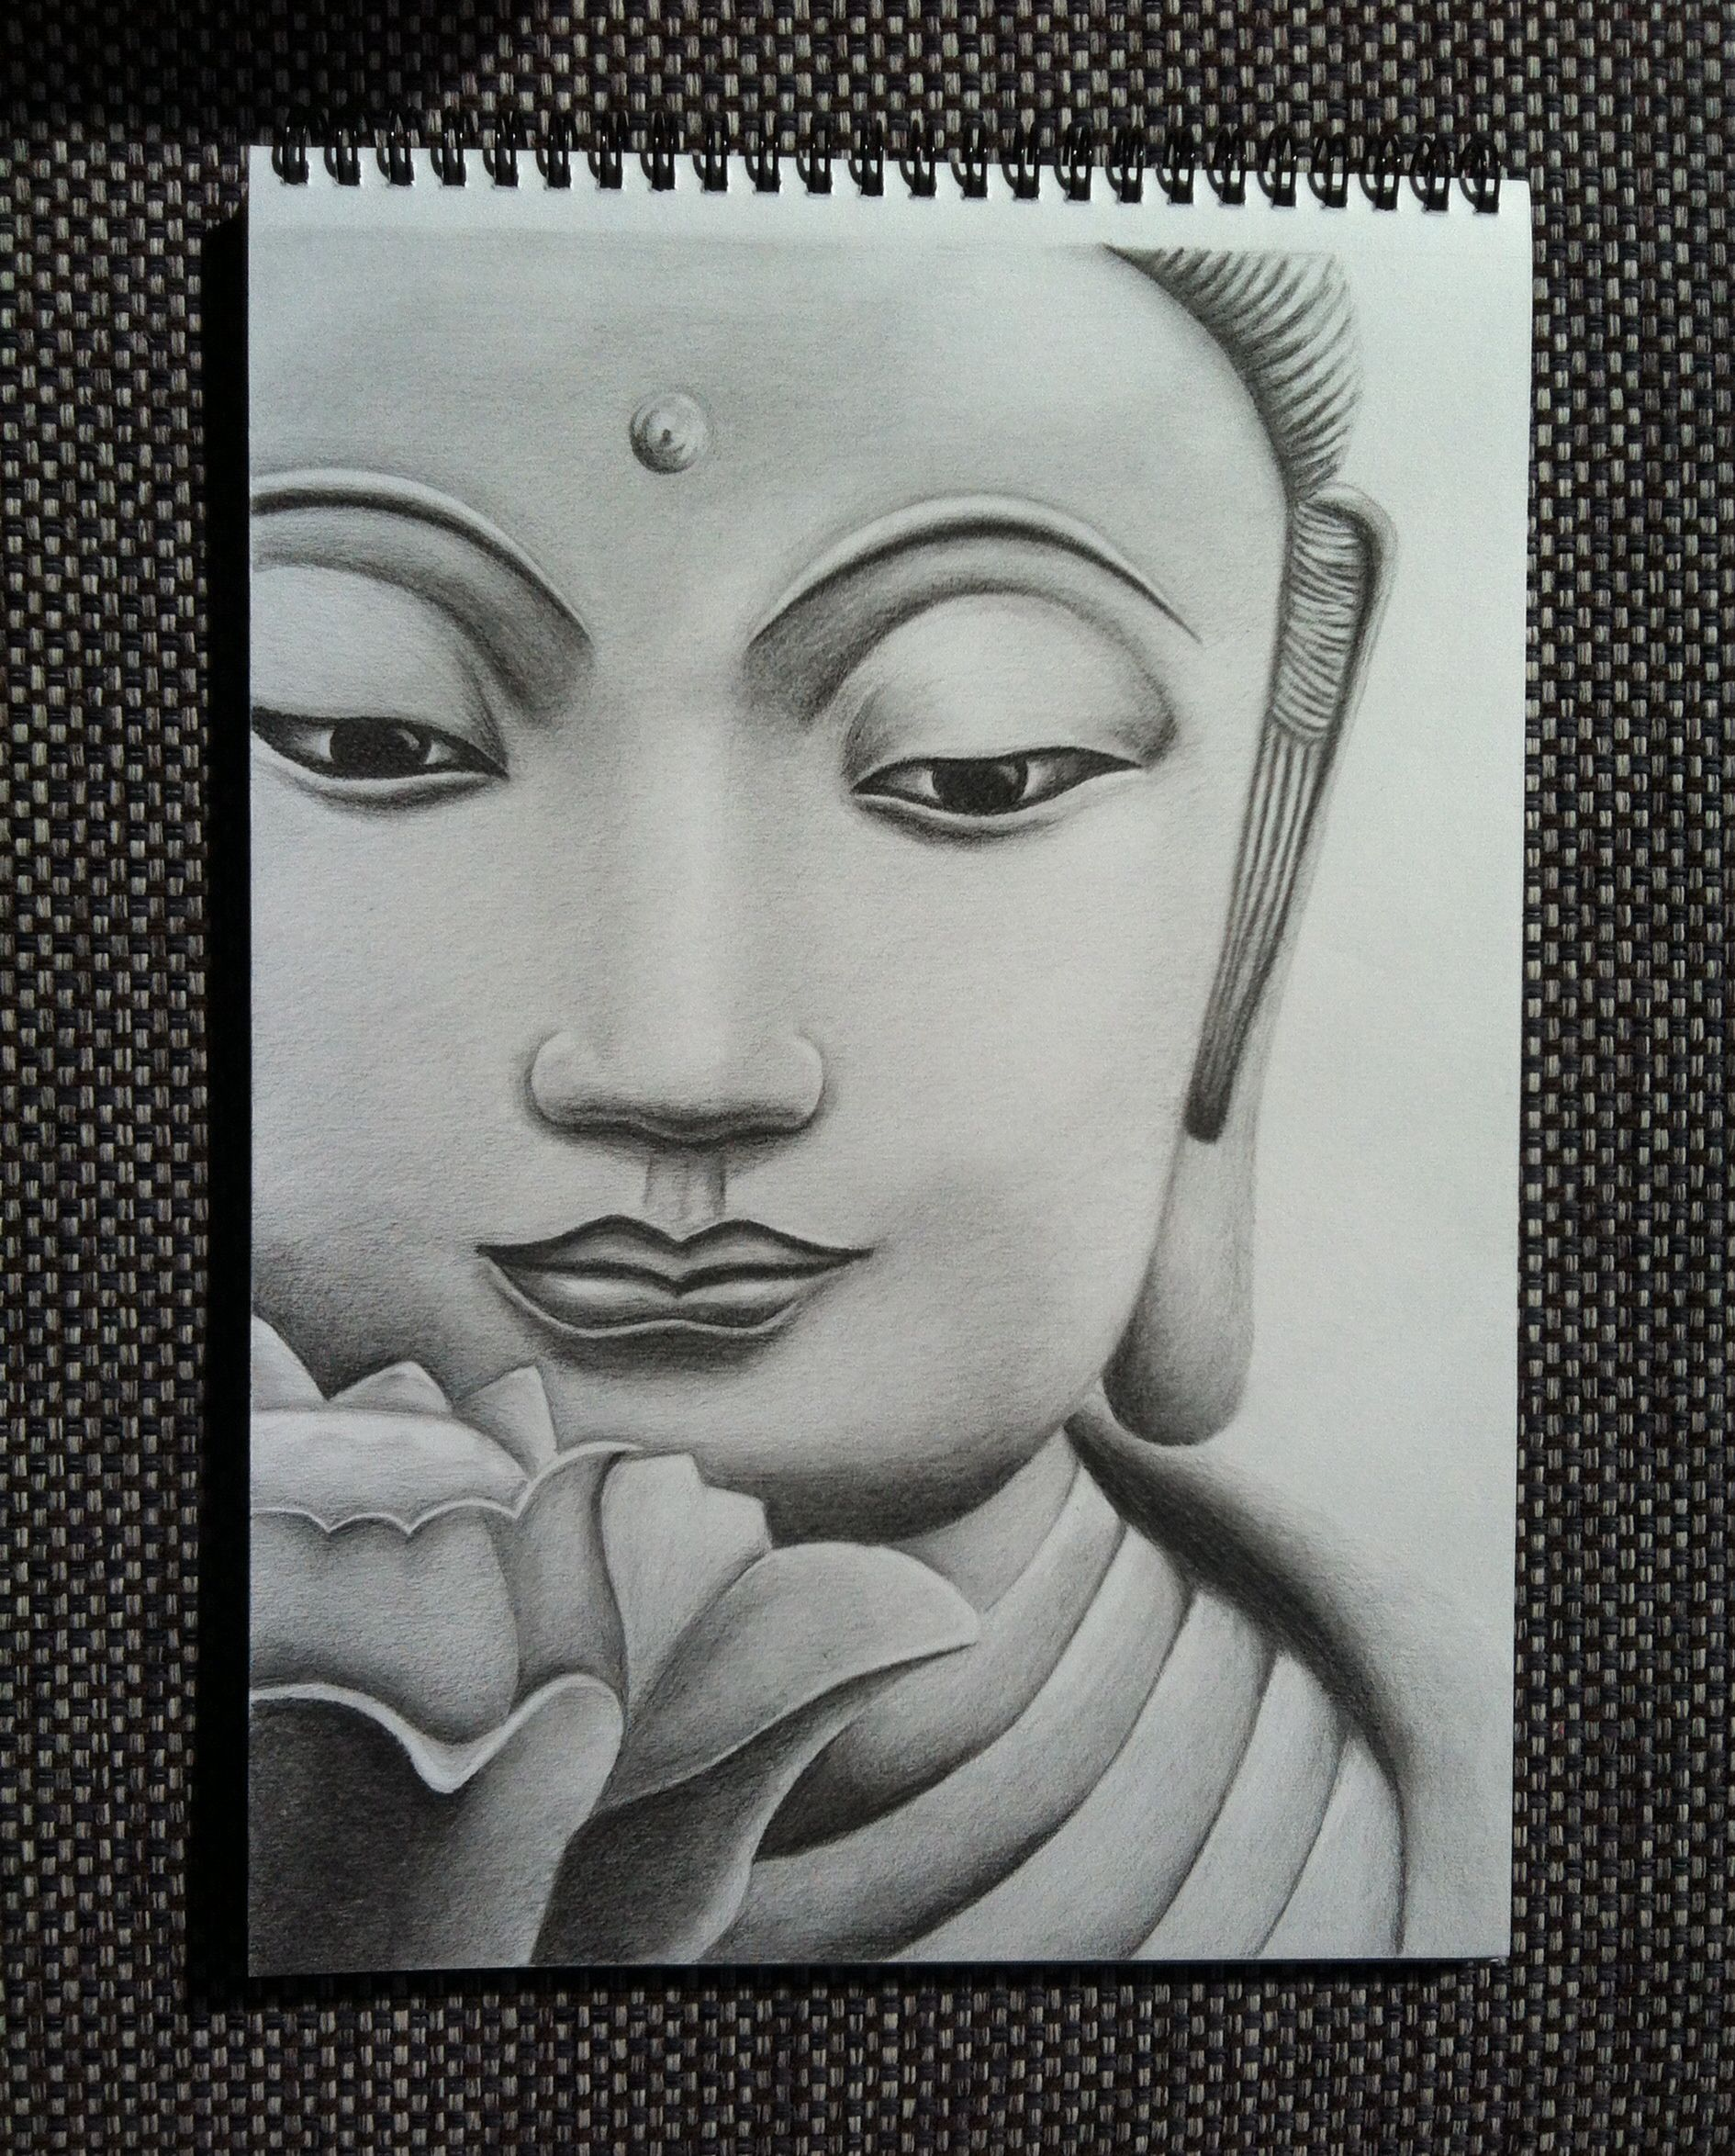 Buddha Pencil Drawing Images